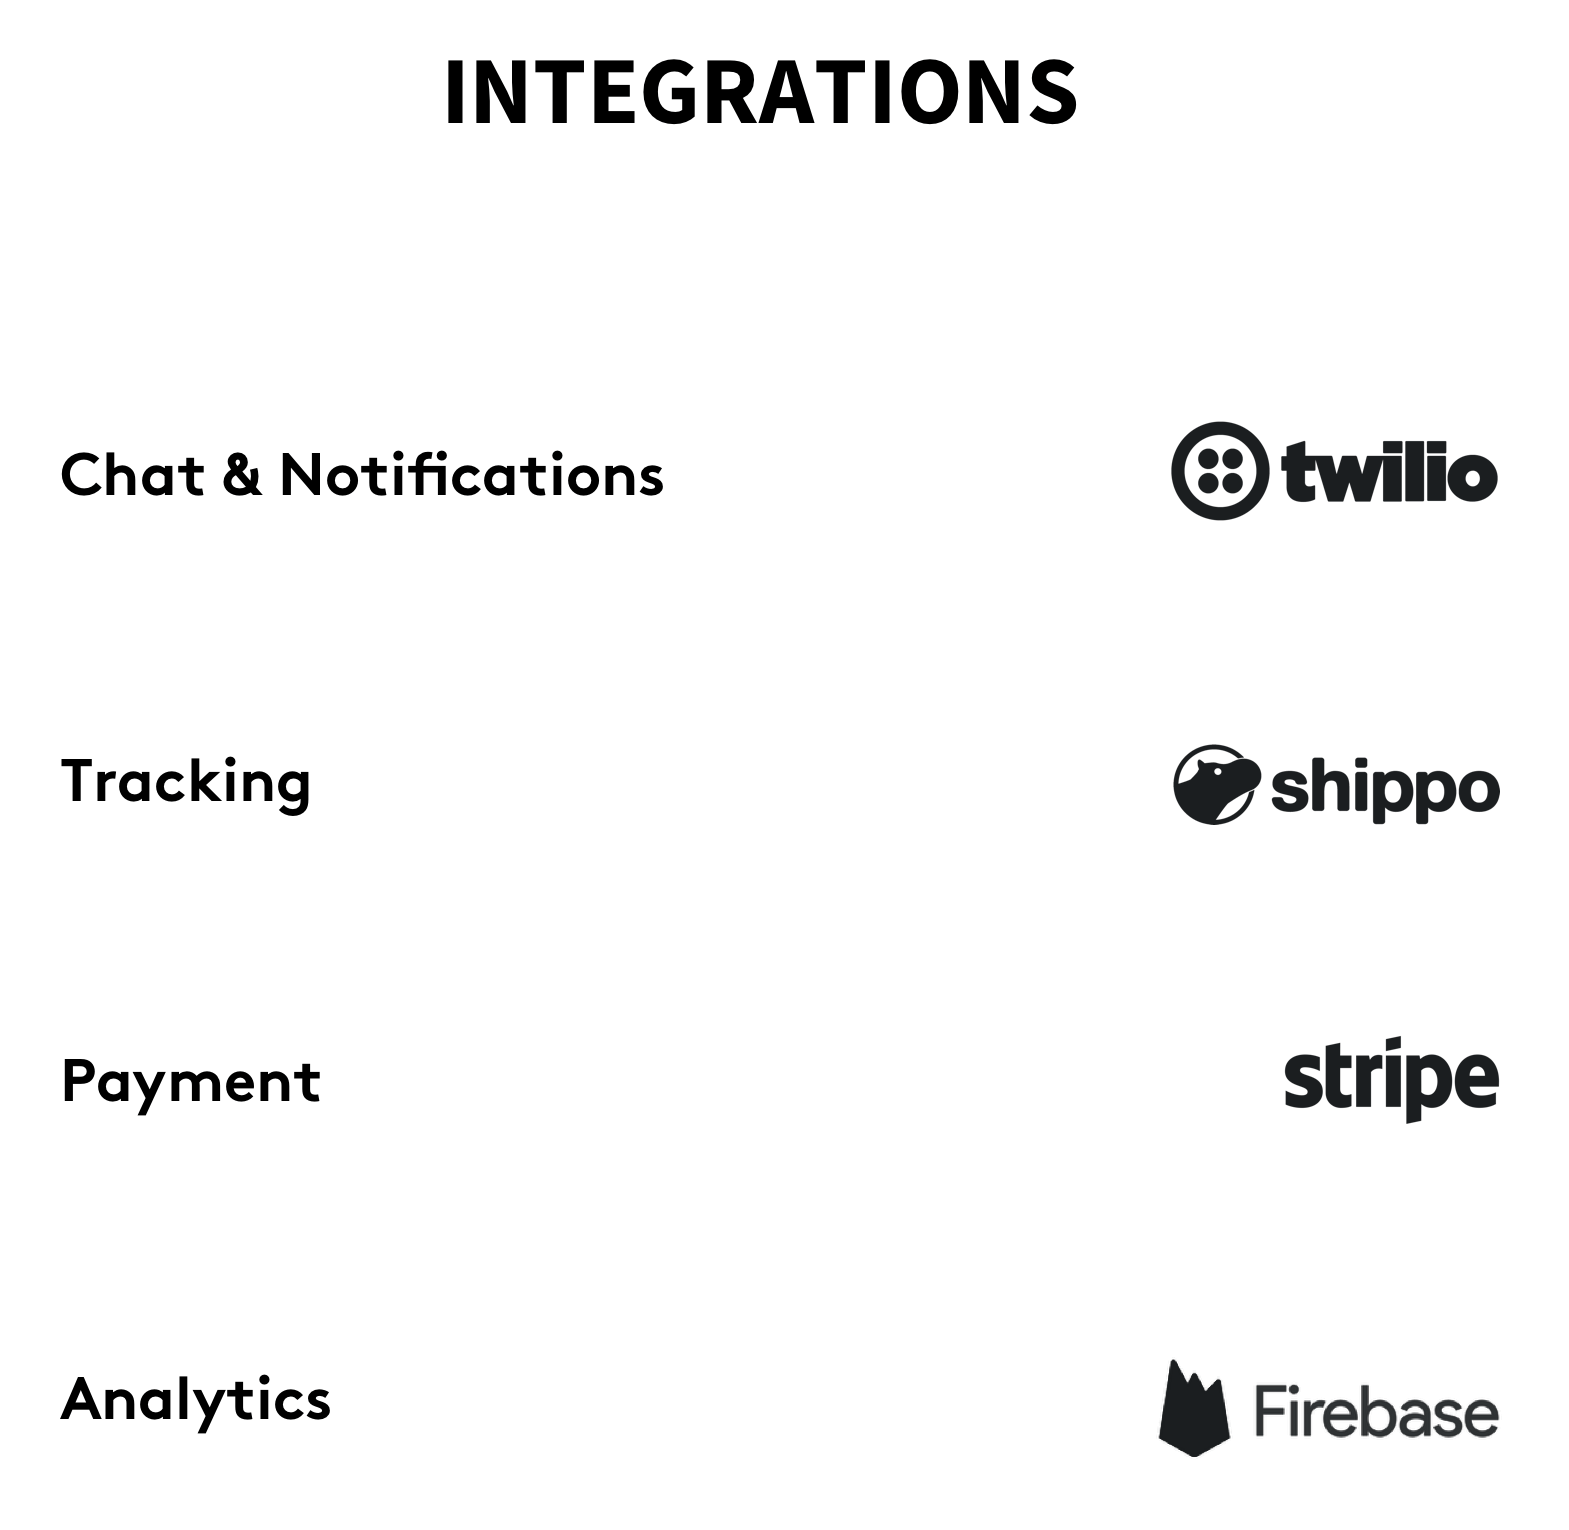 A diagram depicting the app user flow and integrations